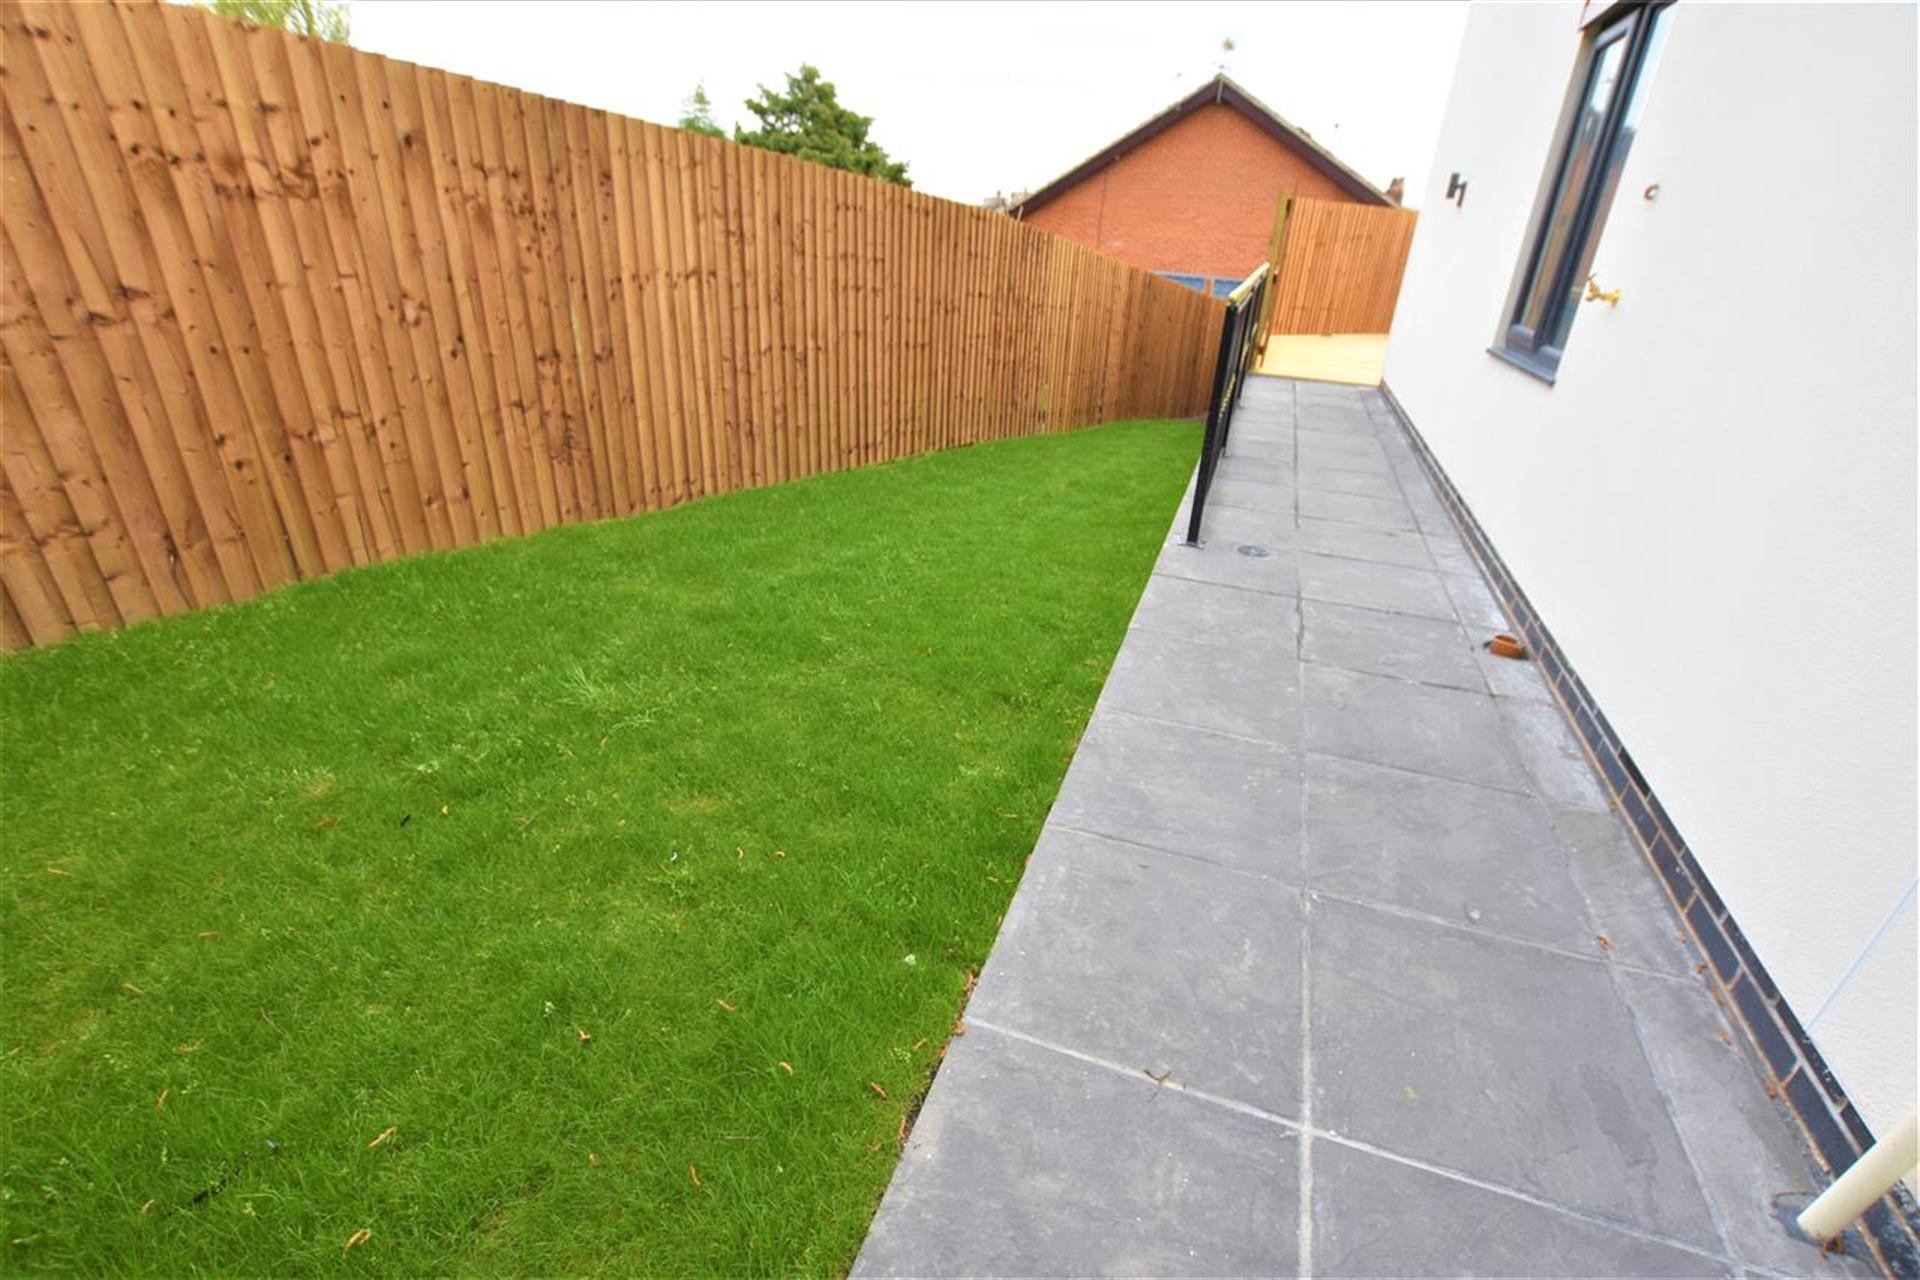 3 Bedroom Semi-detached House For Sale - Garden